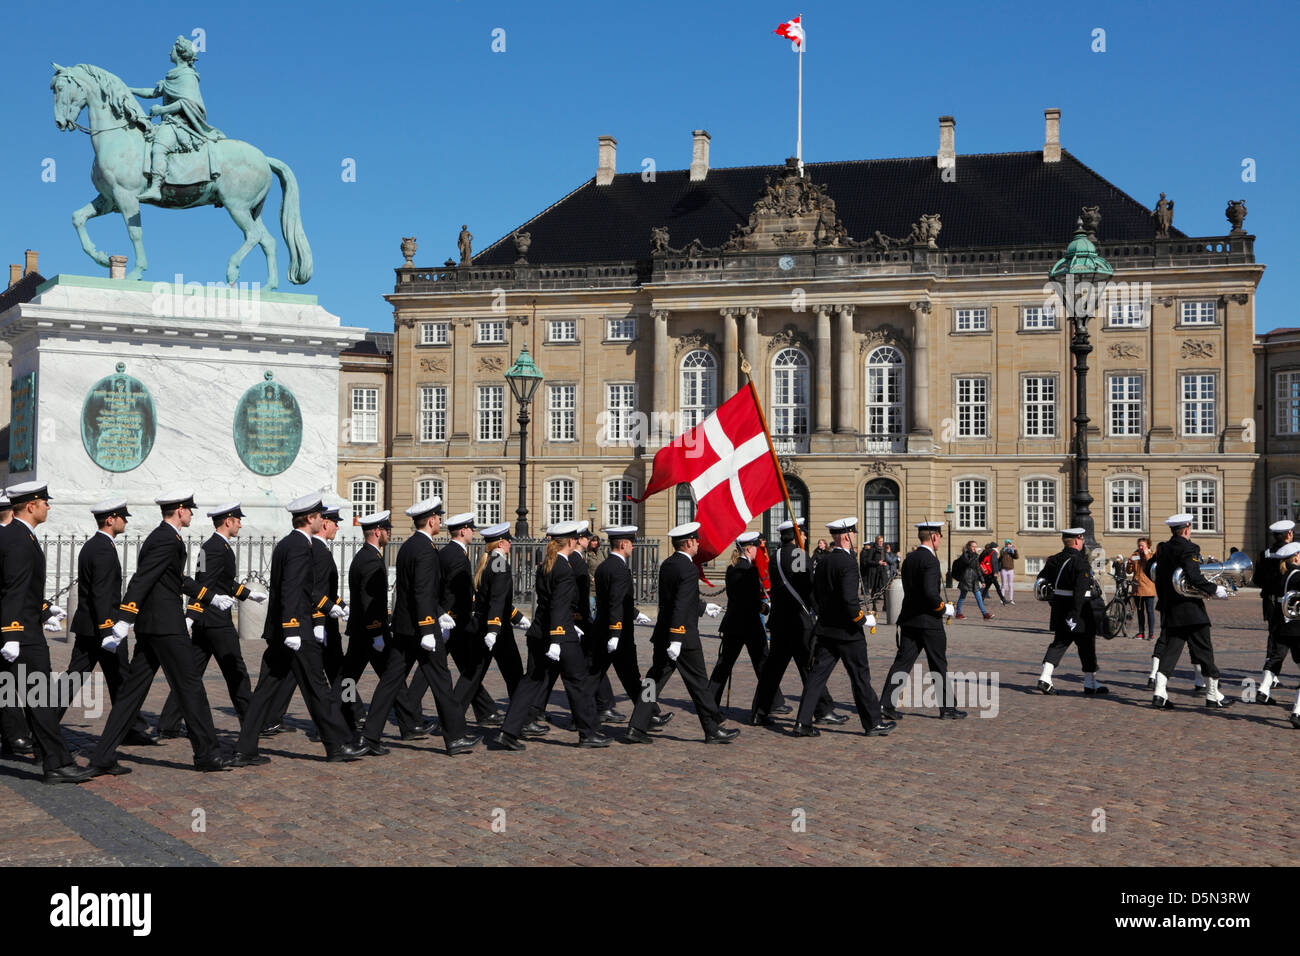 Copenhagen, Denmark. April 4th 2013. Cadets from the Royal Danish Naval Academy accompanied by the playing and singing - Stock Image